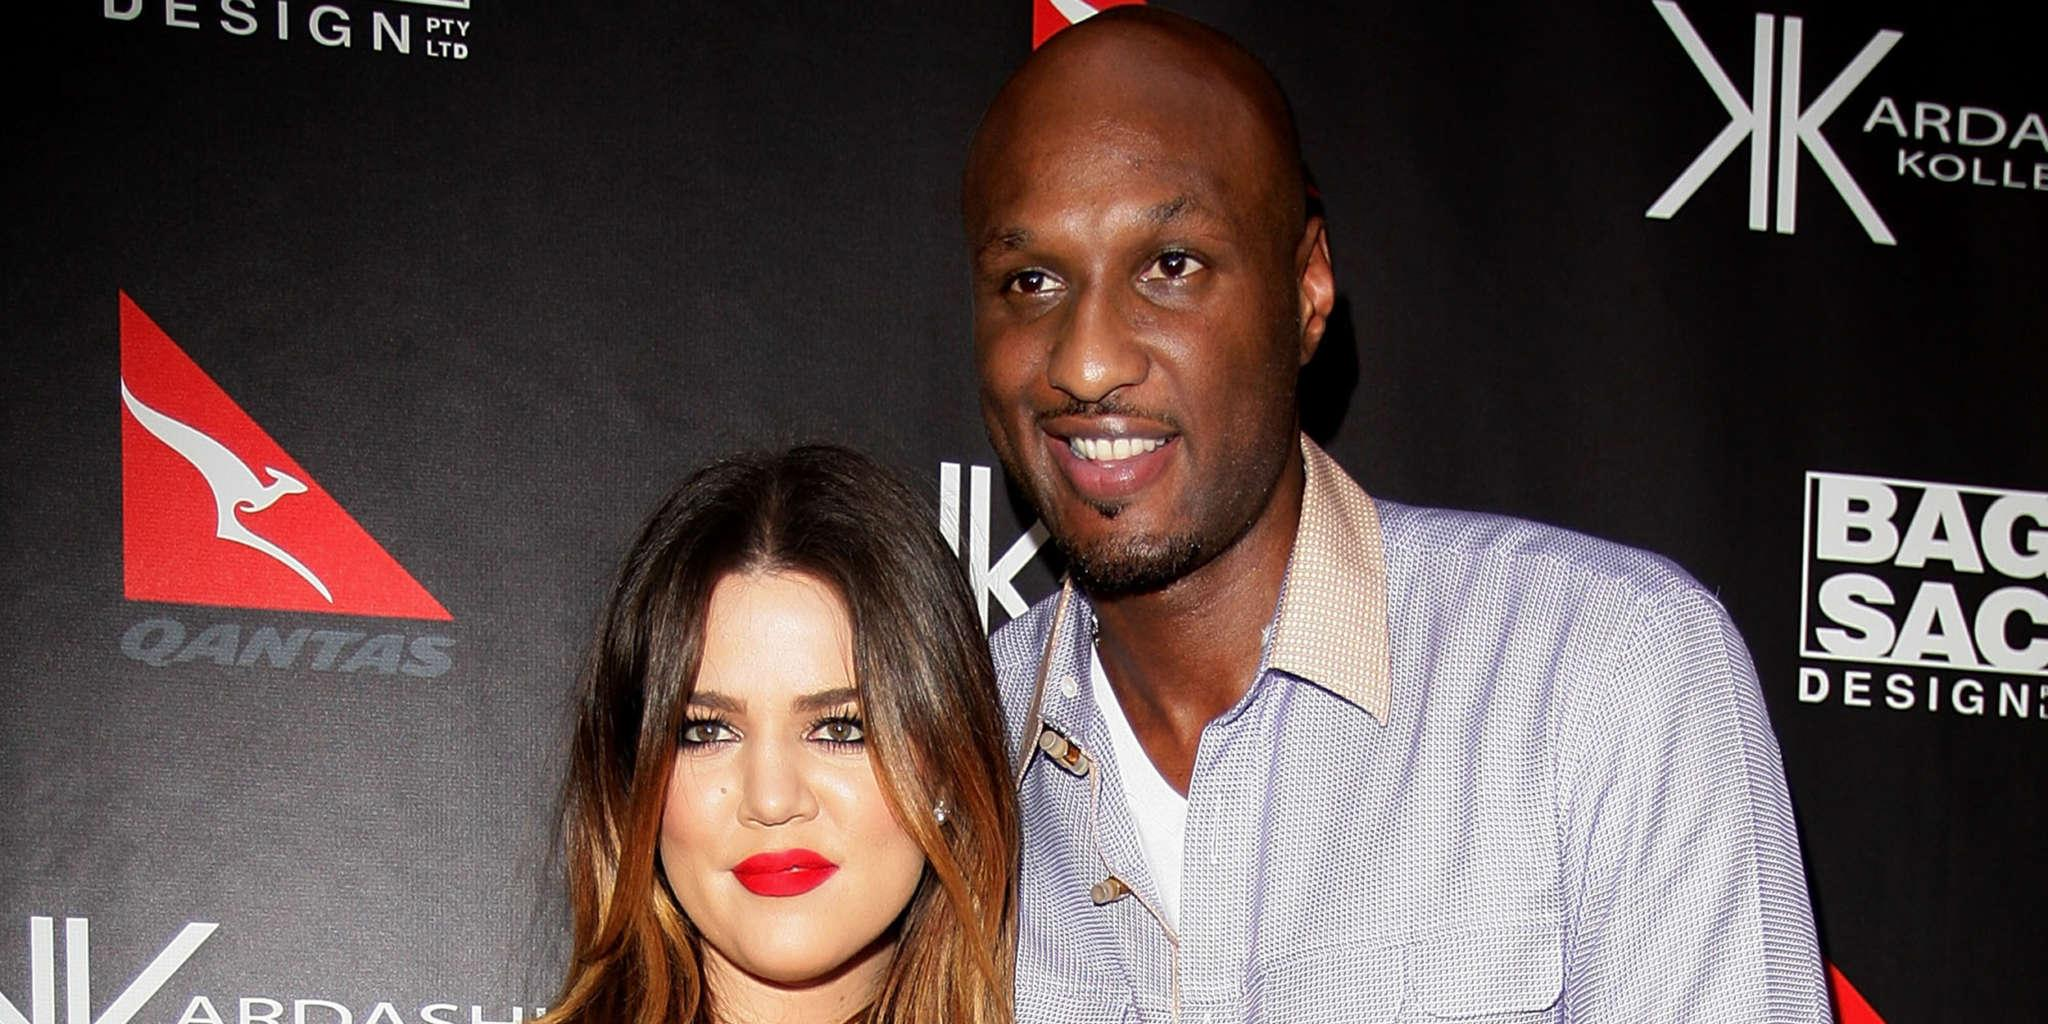 Khloe Kardashian Gushes Over Lamar Odom And Fans Are Crazy With Excitement